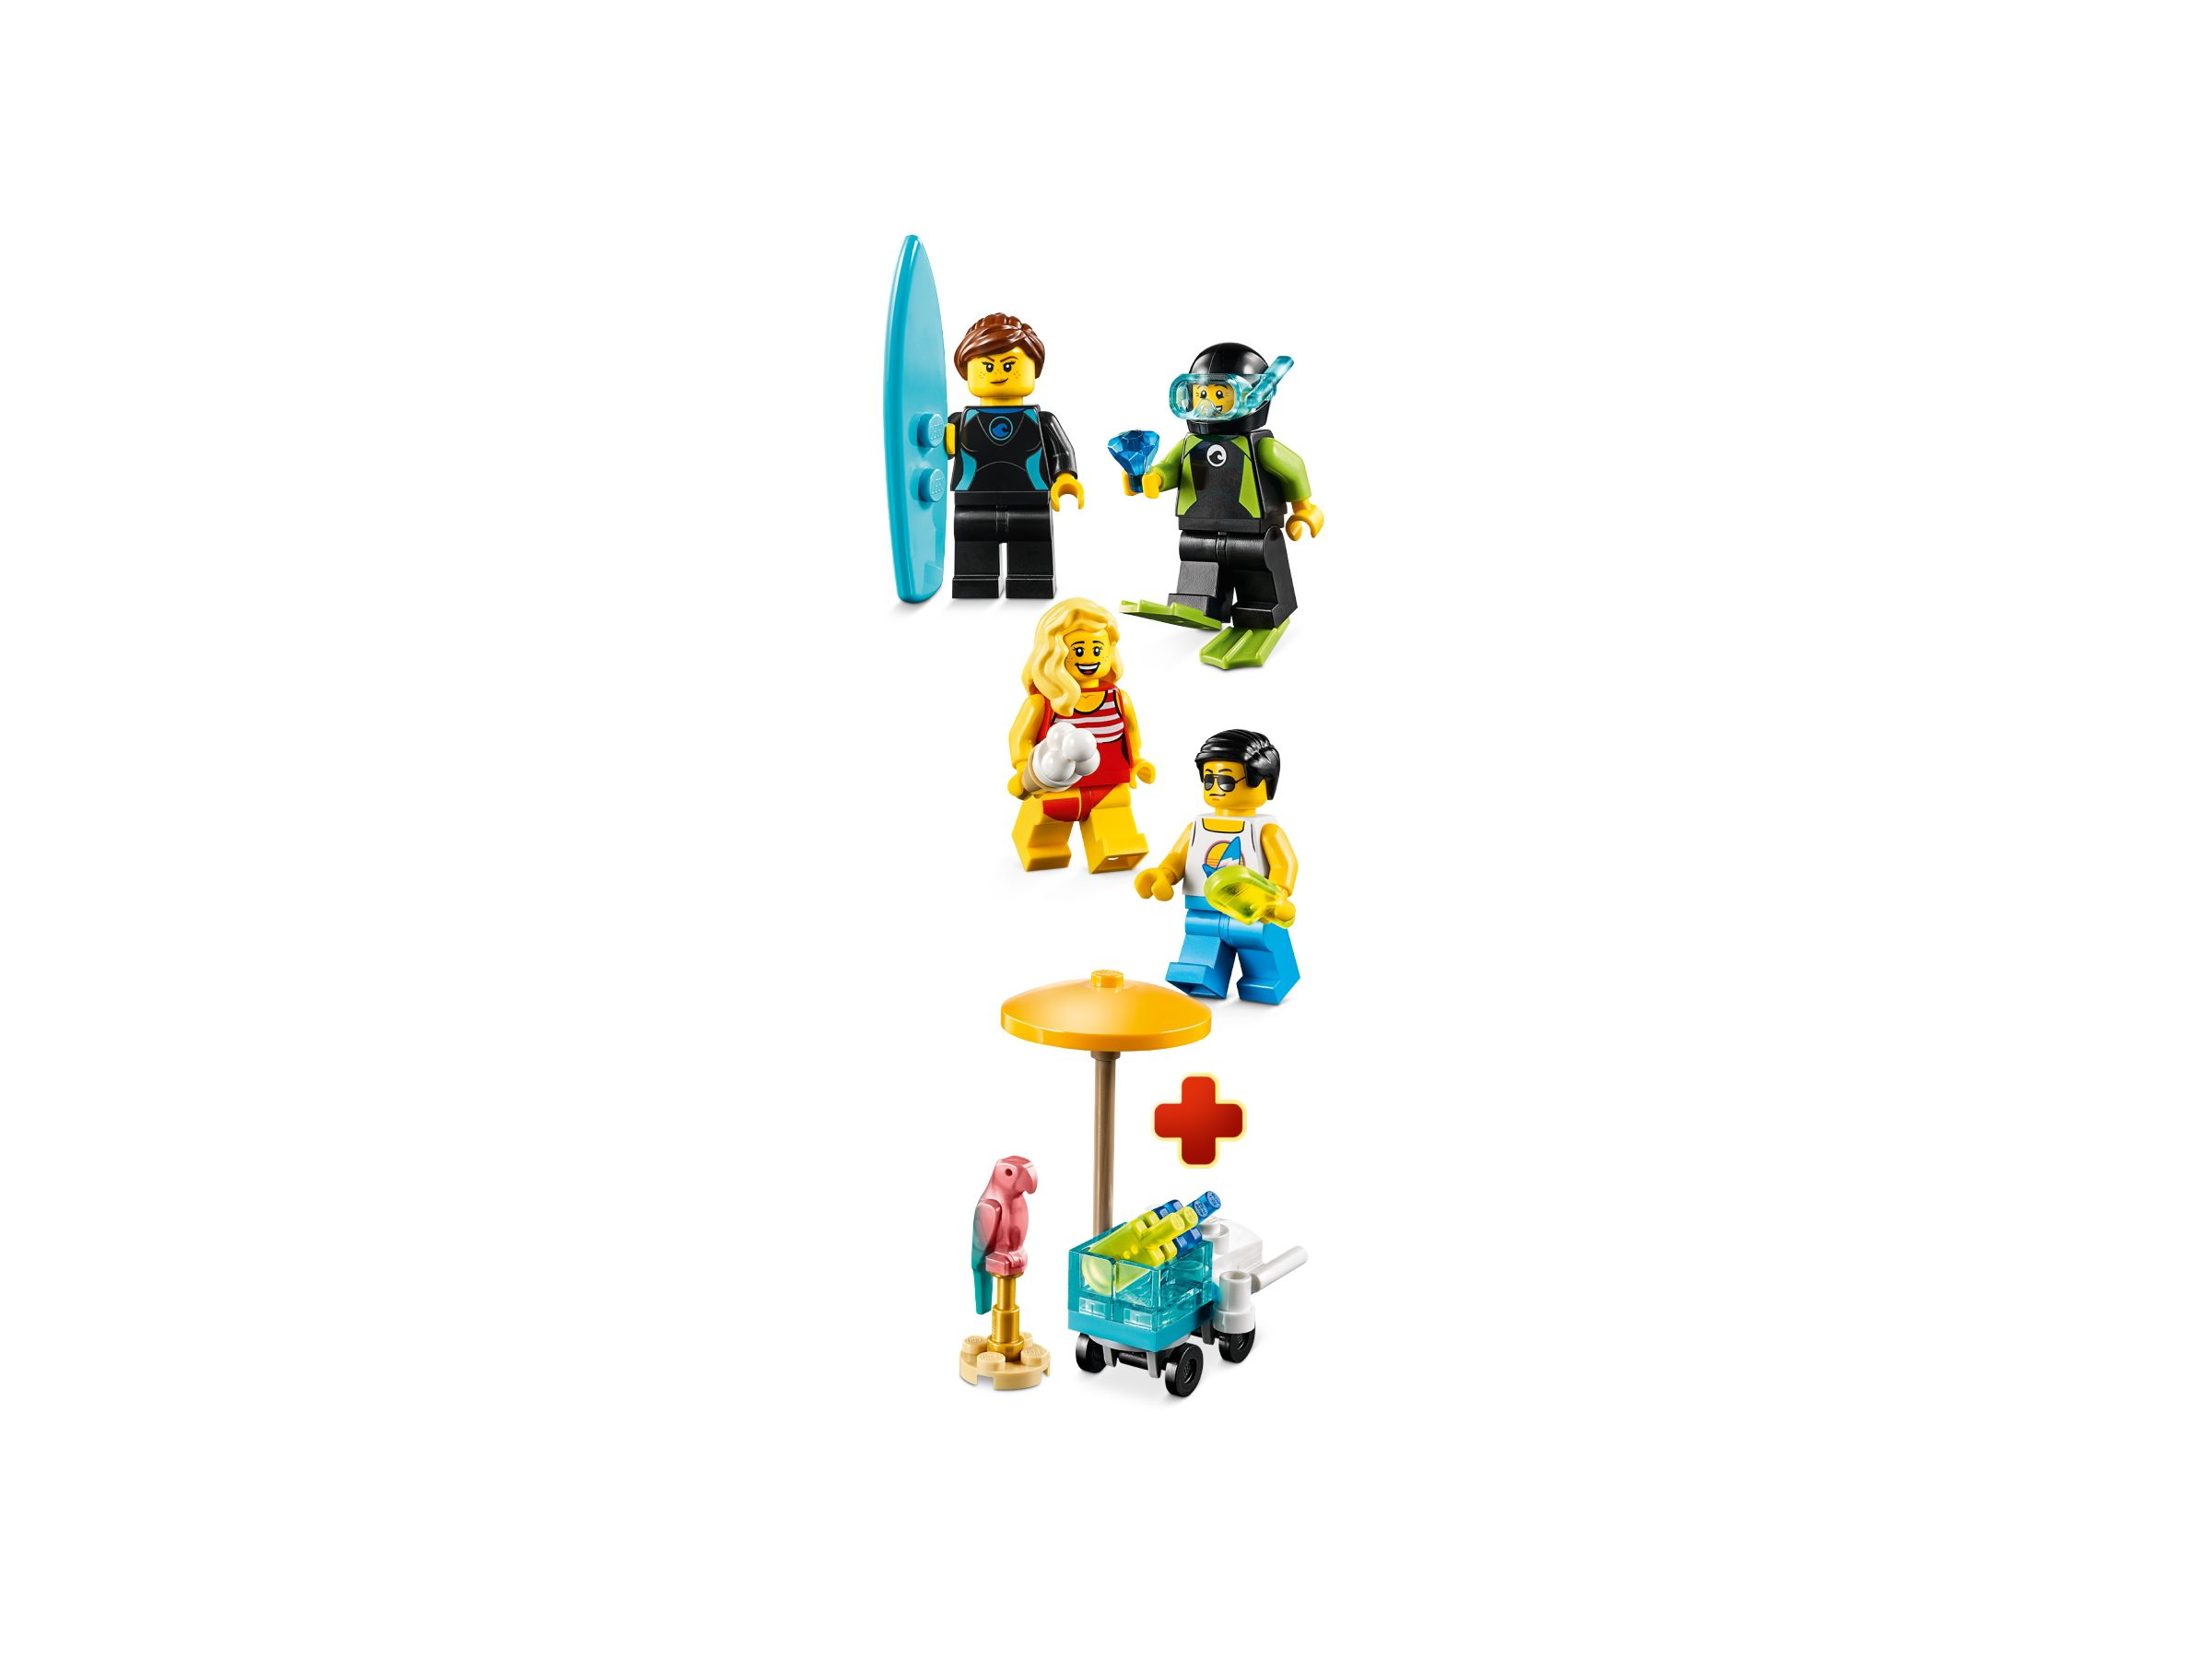 LEGO Miscellaneous 40344 Minifiguren-Set – Sommerparty LEGO_40344_alt2.jpg